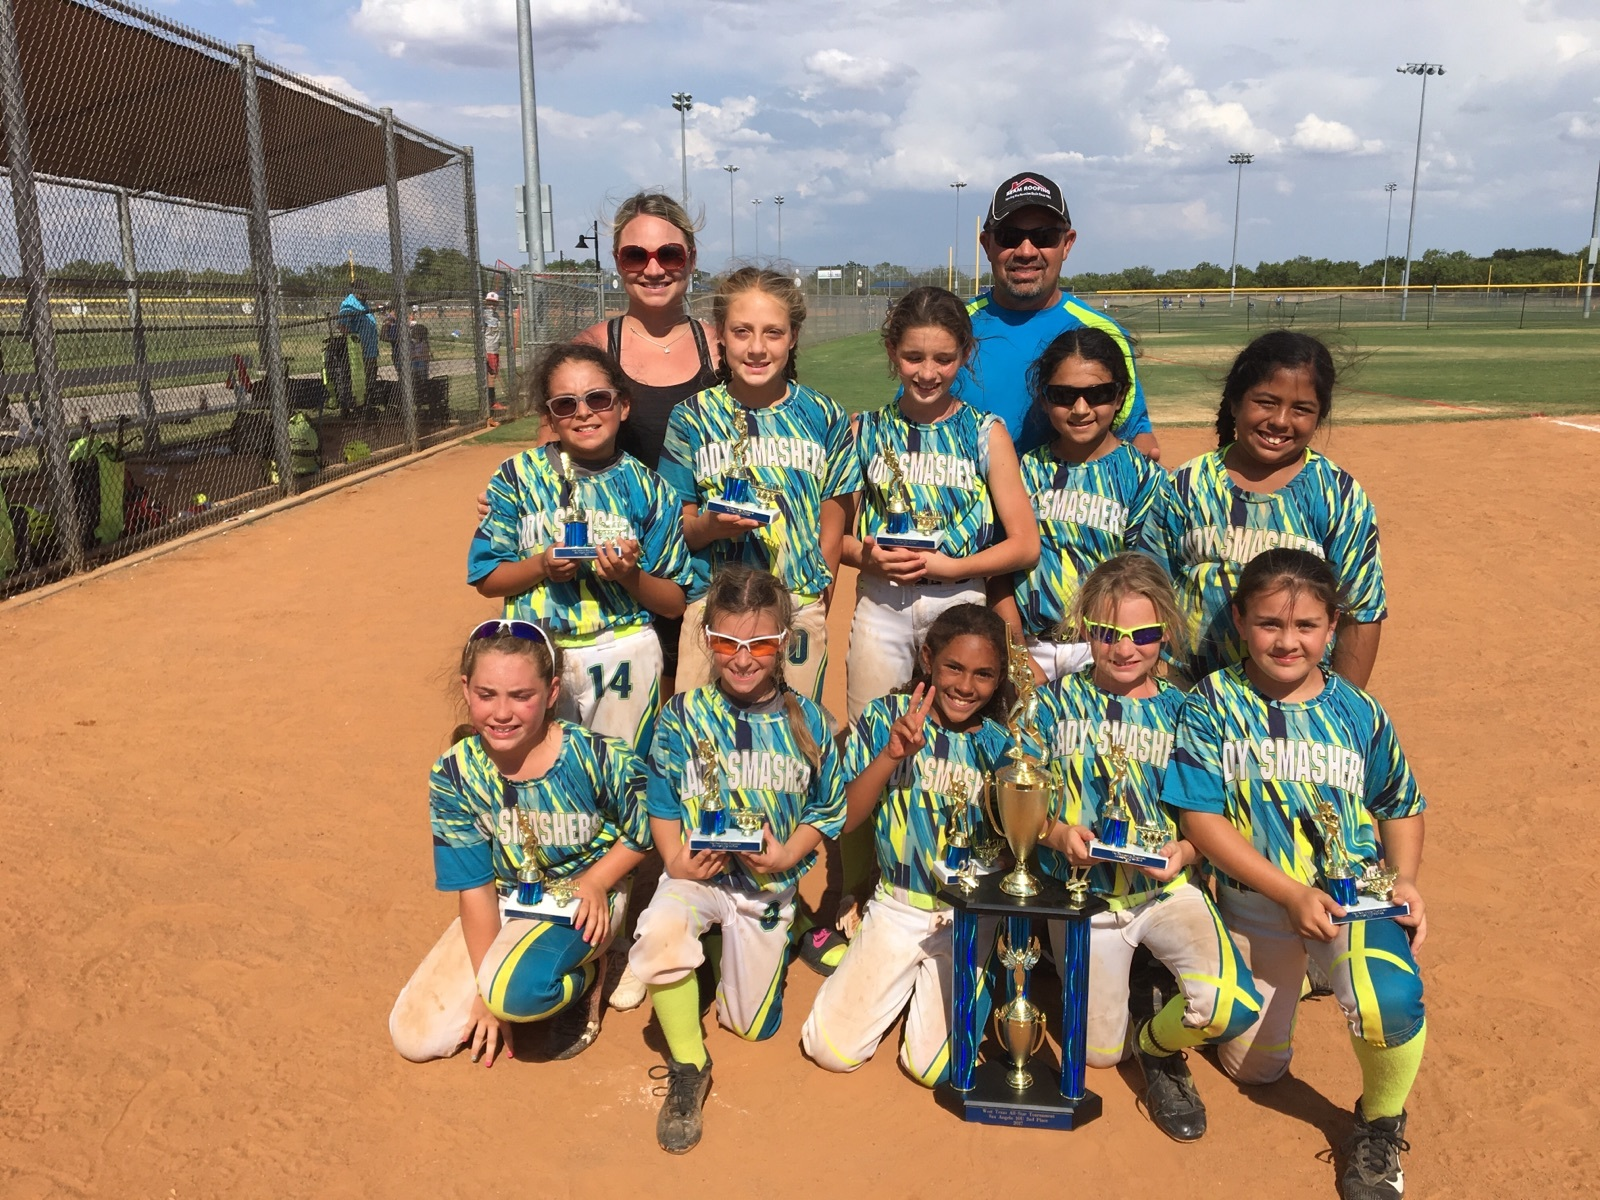 Lady Smashers 2nd Place 10U